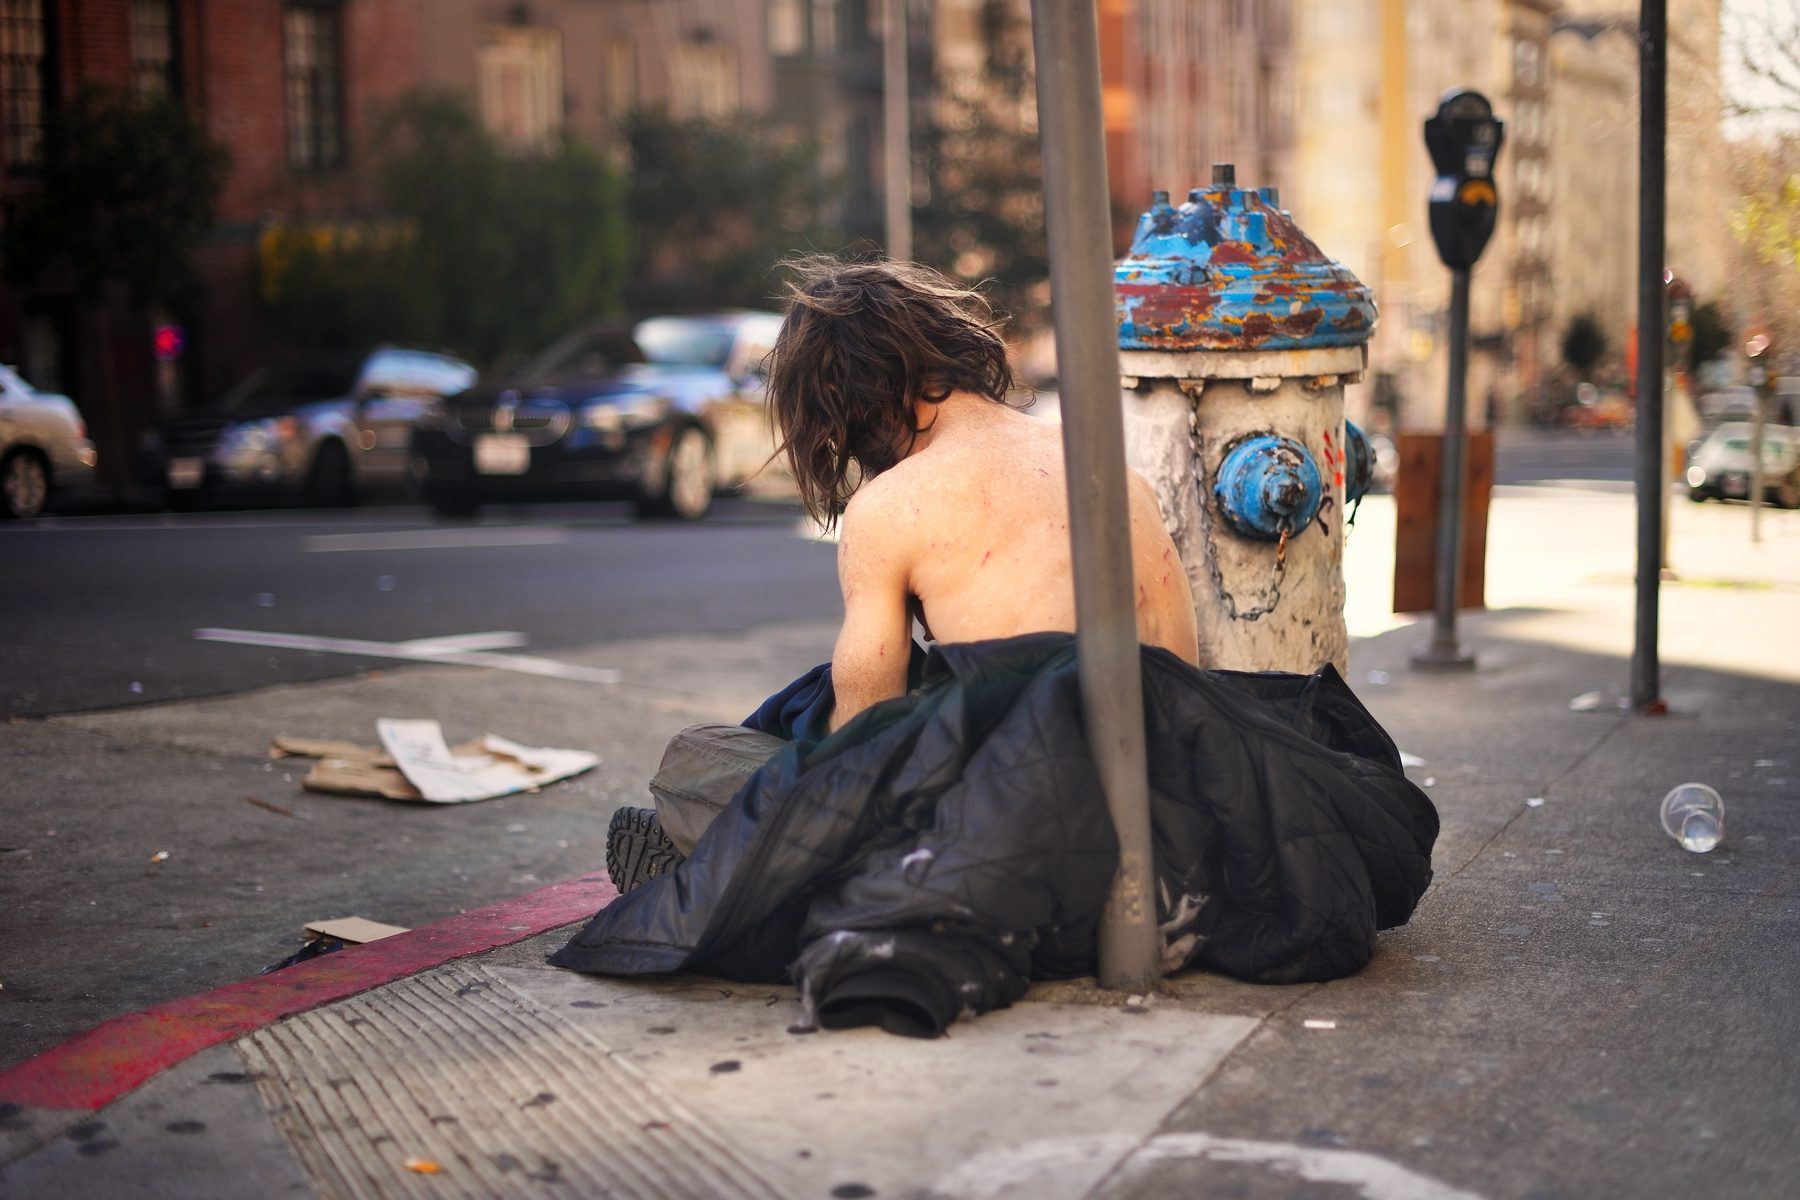 A homeless man on the street in San Francisco. Conservatorship law complicates treatment for mentally ill homeless Californians.